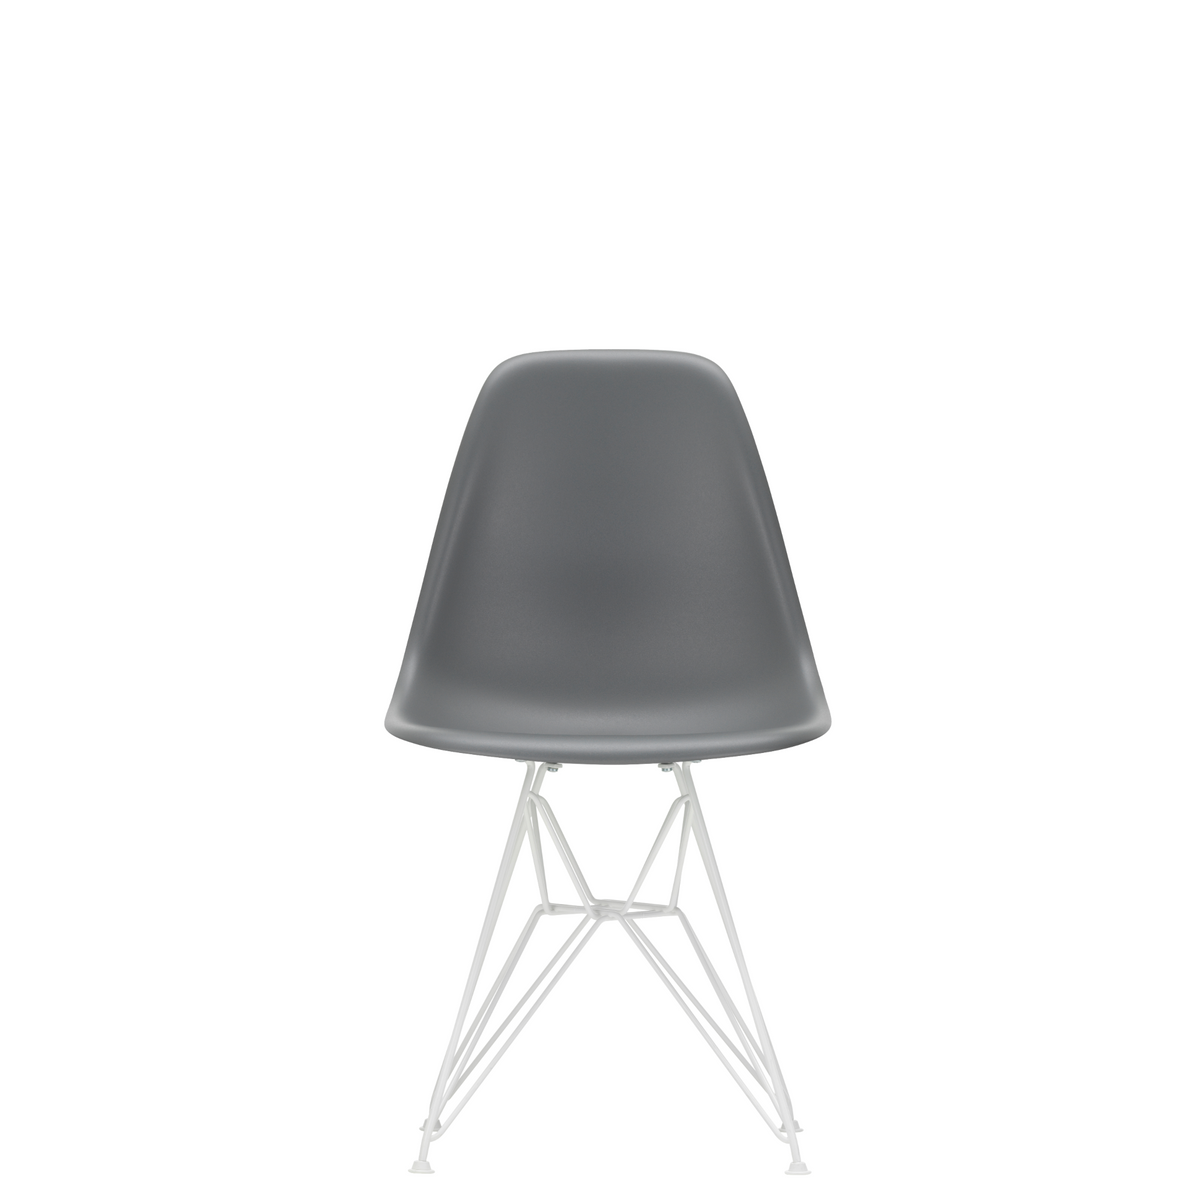 Vitra Eames Plastic Side Chair DSR Powder Coated for Outdoor Use. Granite Grey Shell, White Powdercoated Base